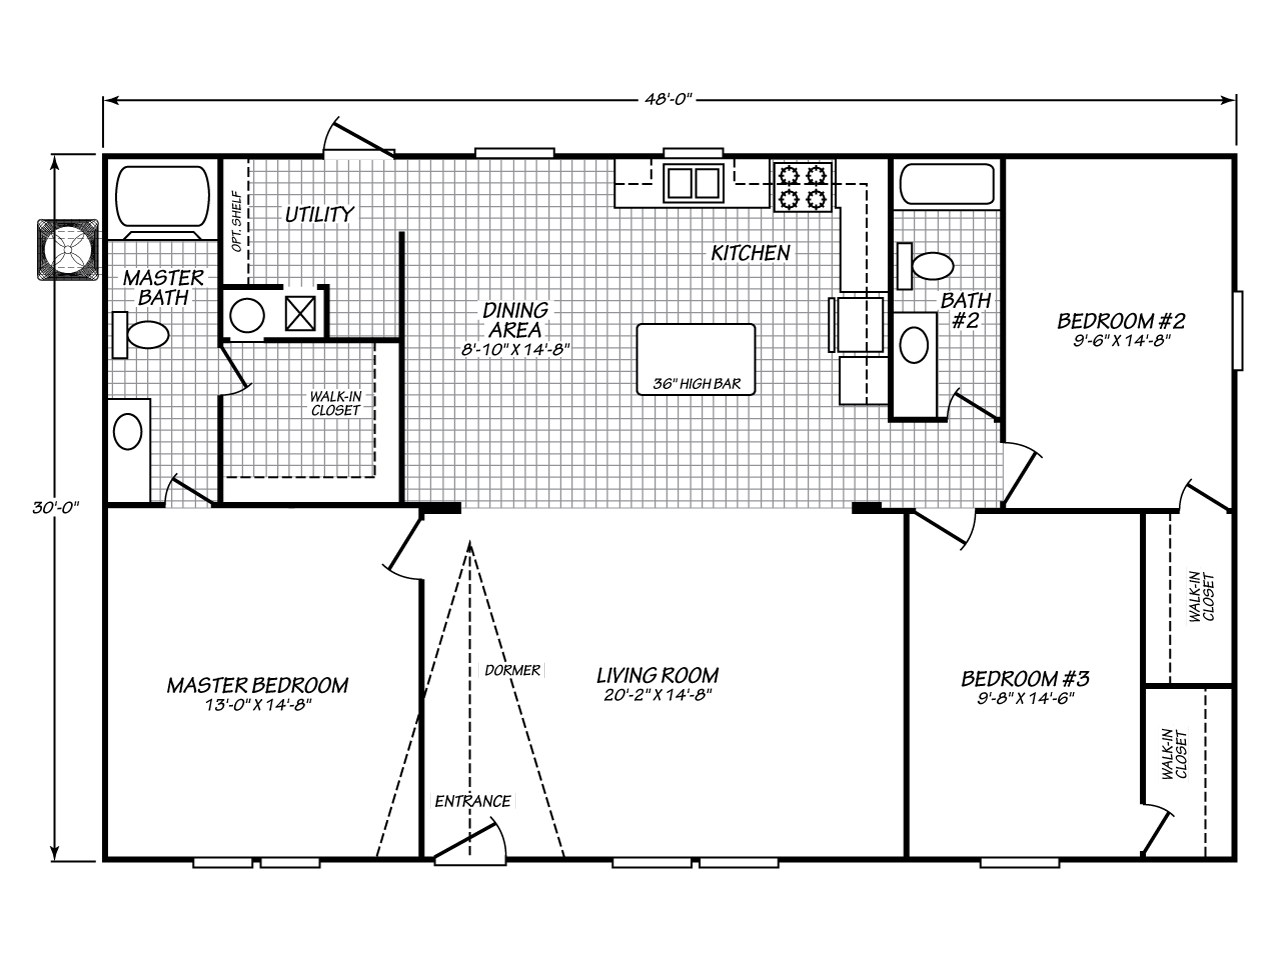 View velocity model ve32483v floor plan for a 1440 sq ft for Texas home builders floor plans